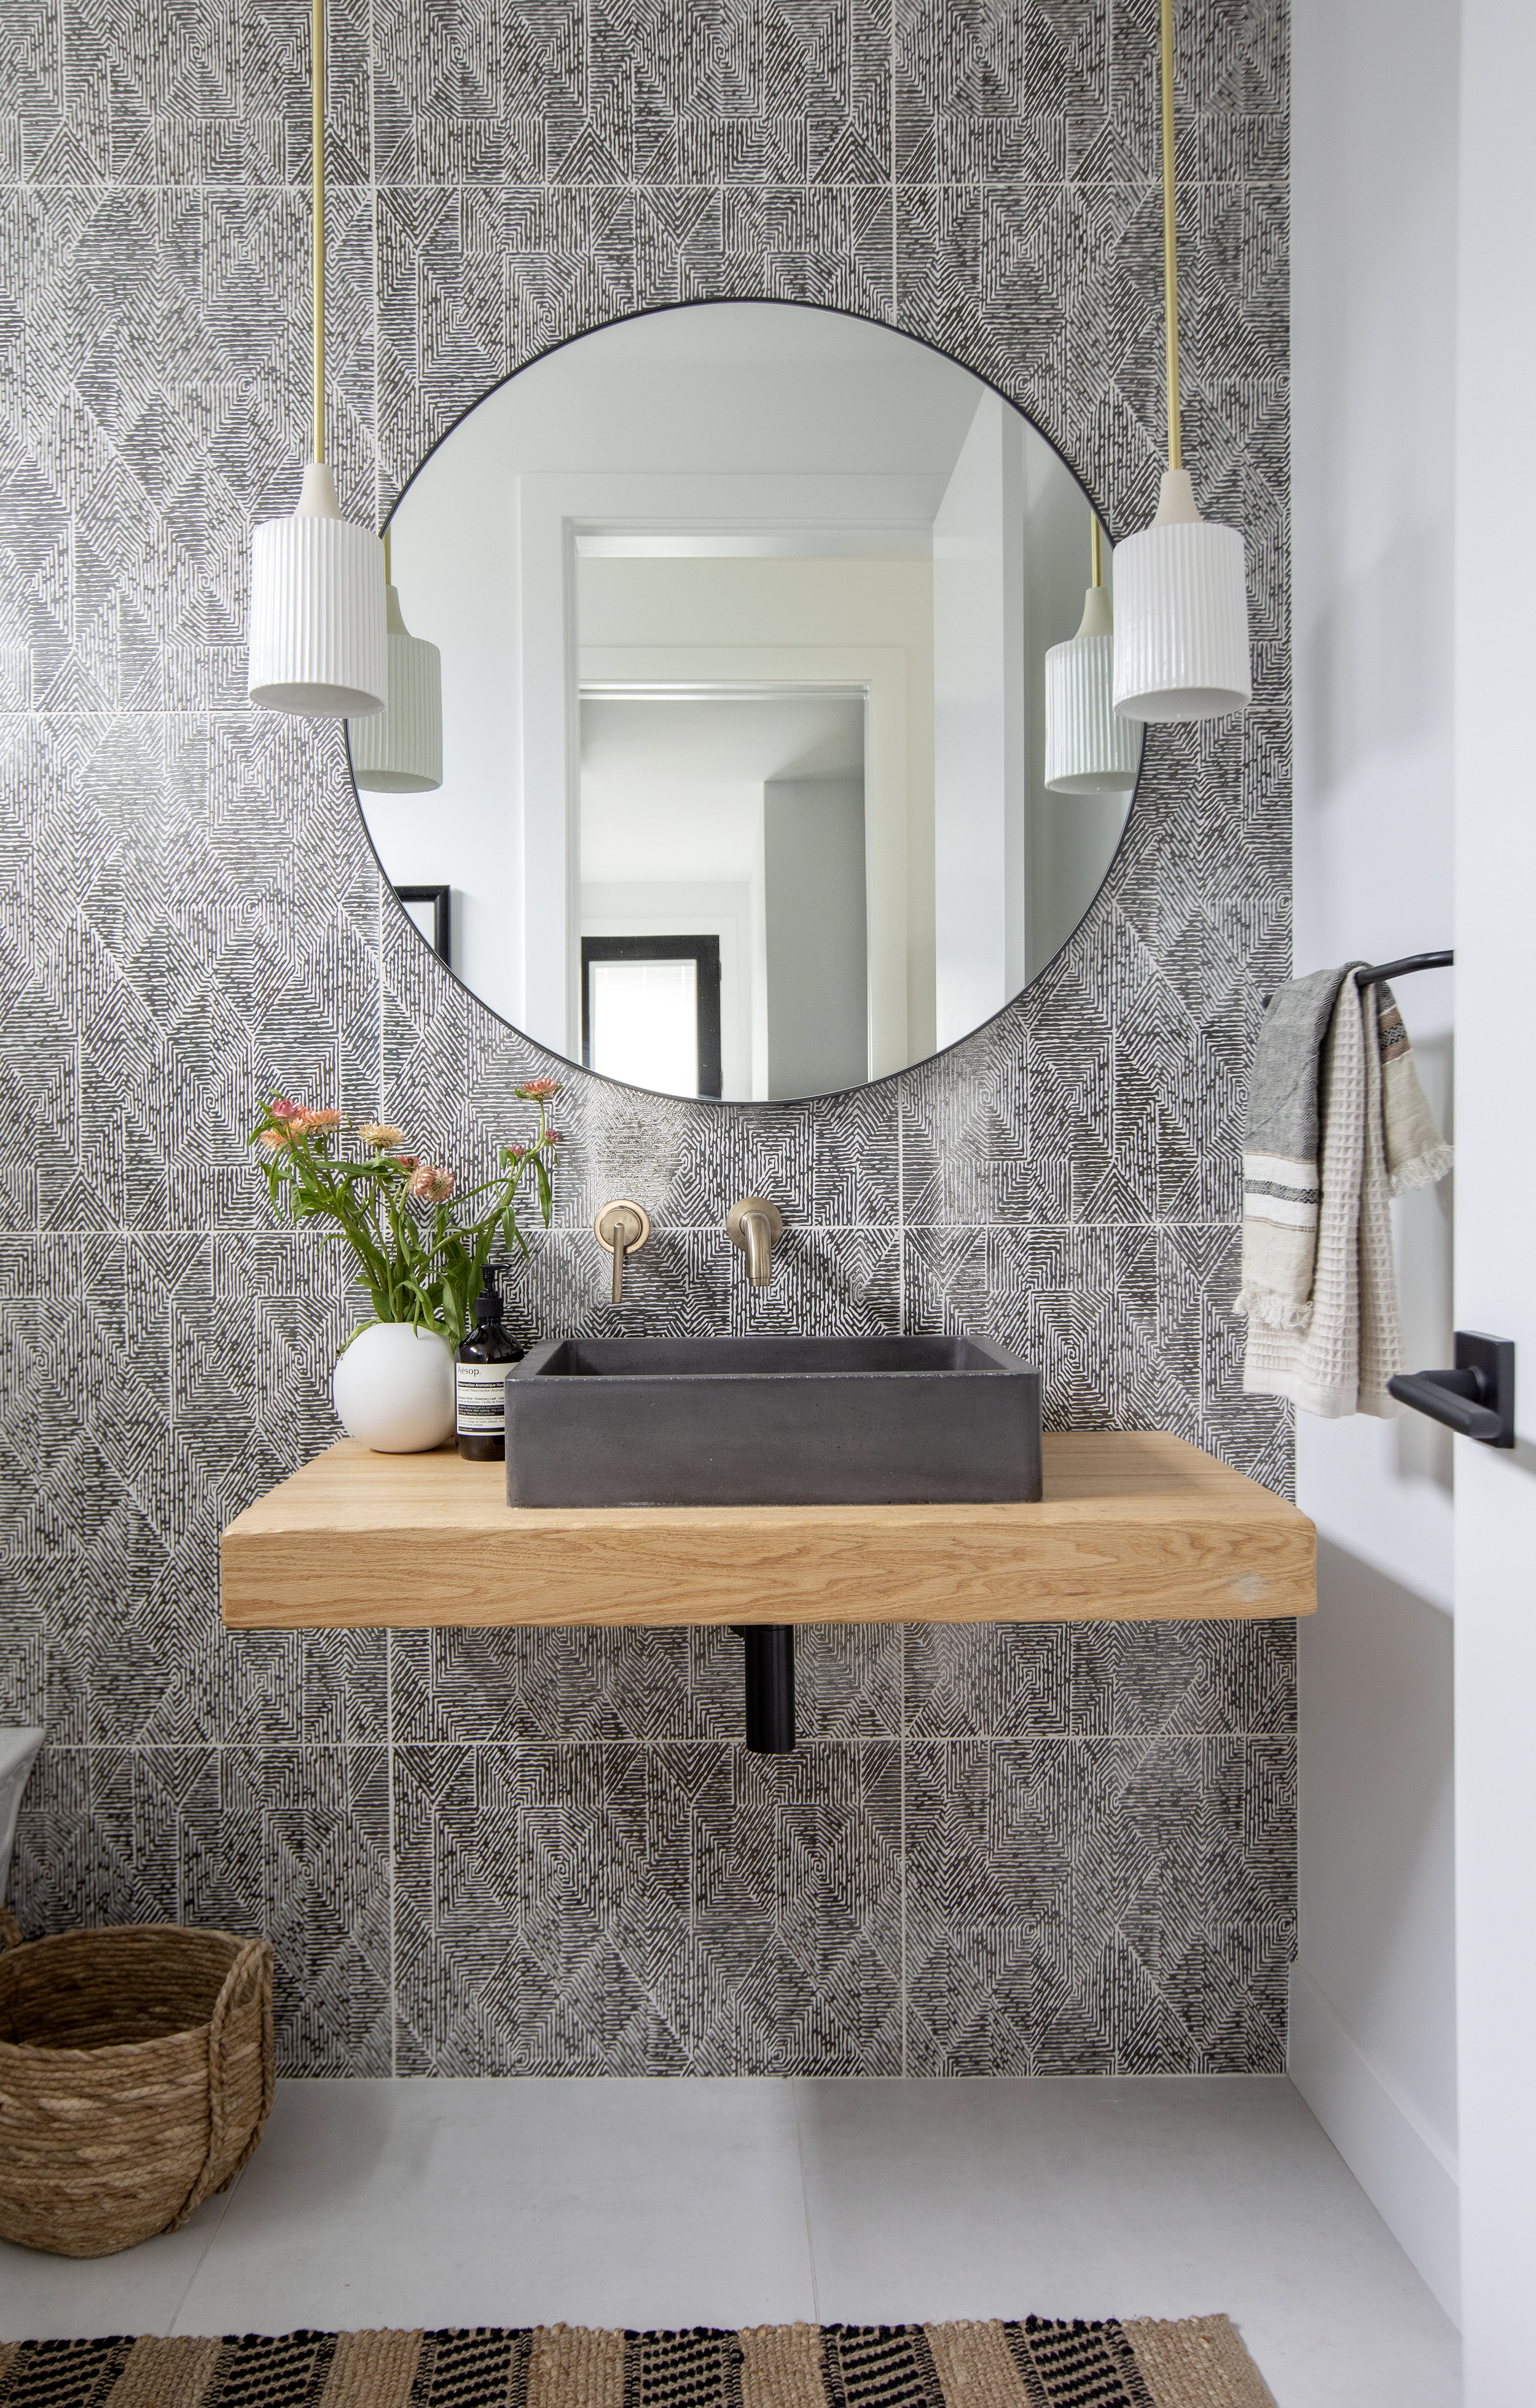 The modern bathroom in East 13th Street has a patterned black and white wallpaper and a square concrete sink, complete with gold faucet details.